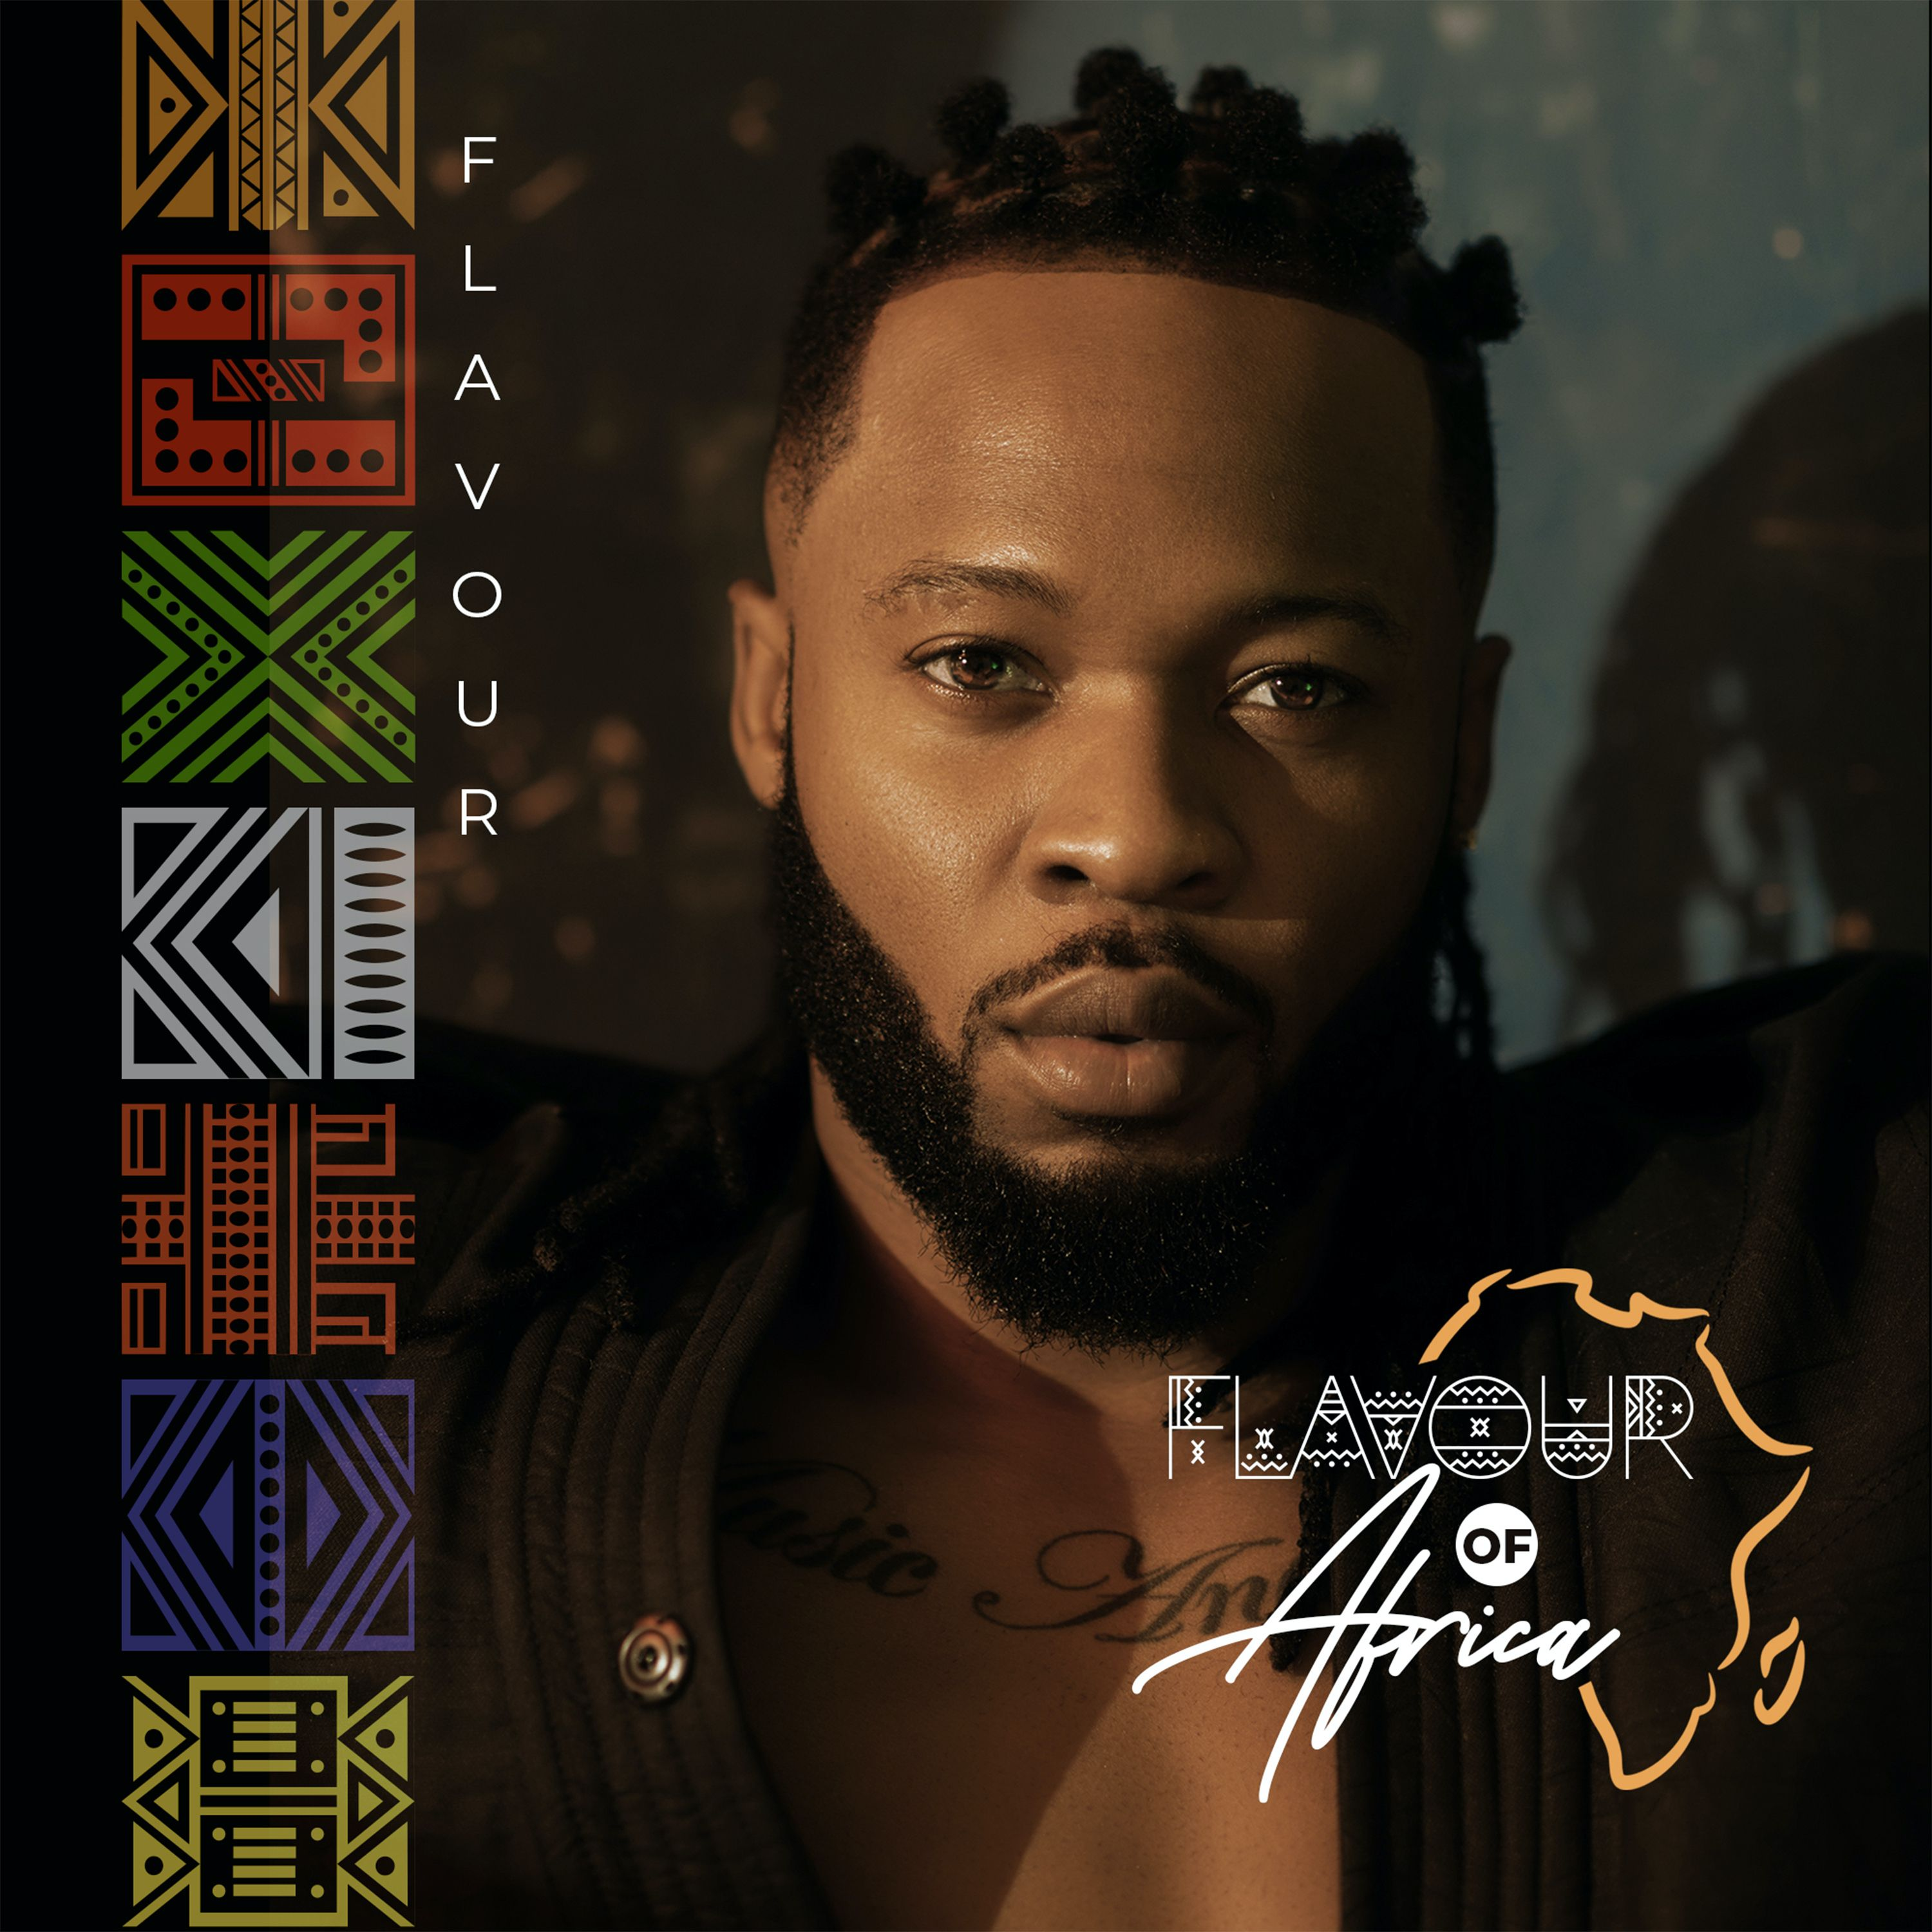 Flavour - Product Of Grace